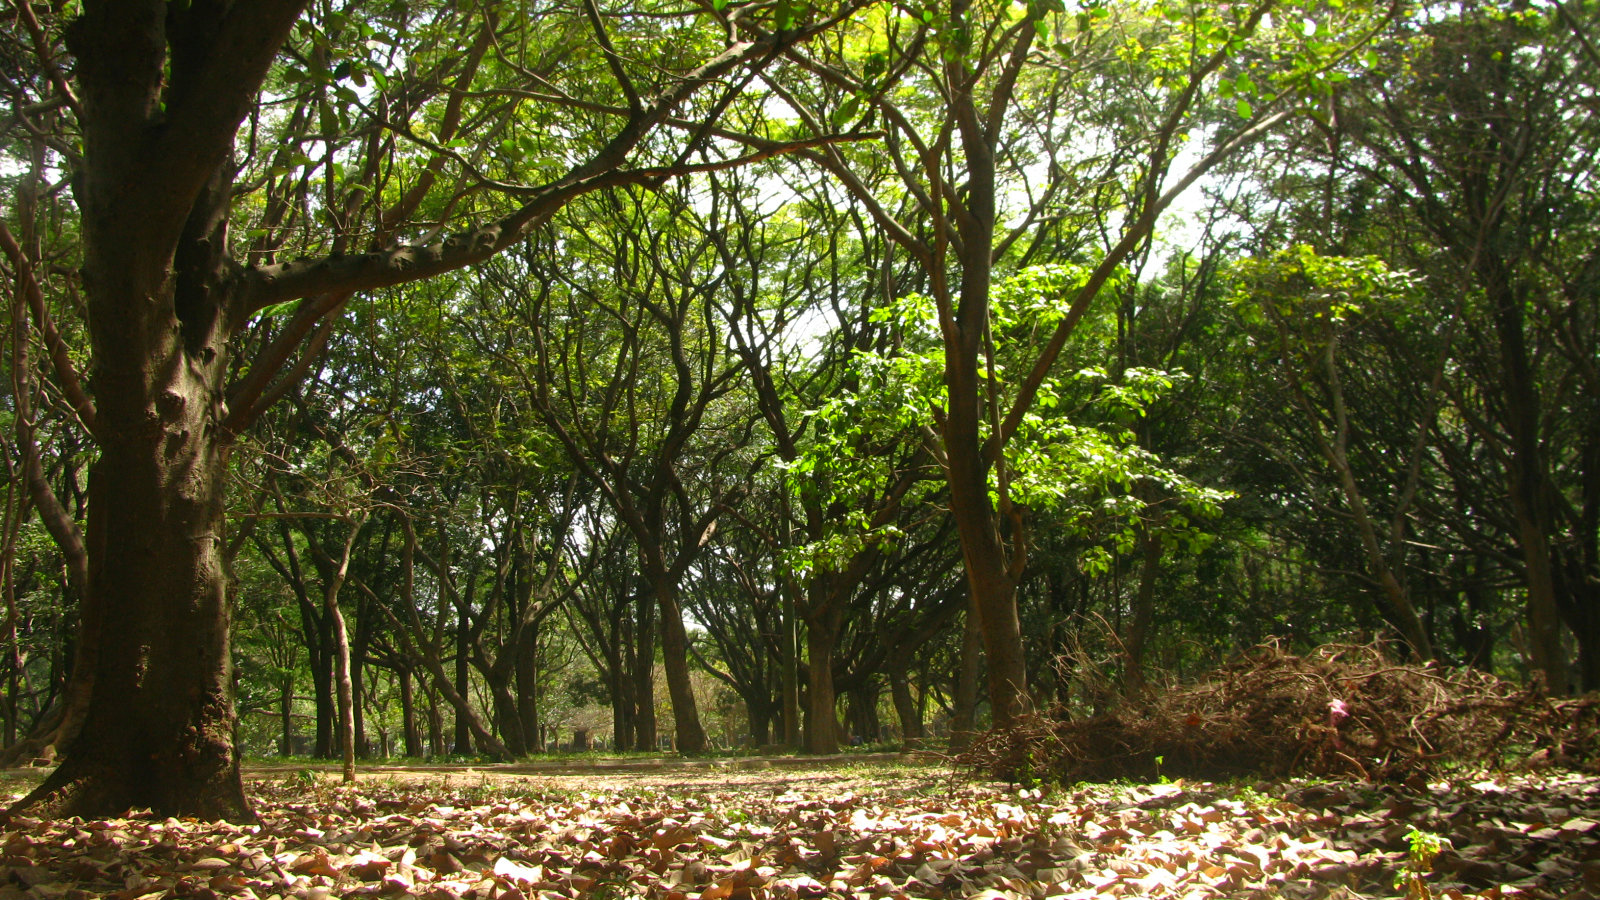 India-Bangalore-parks-green-space